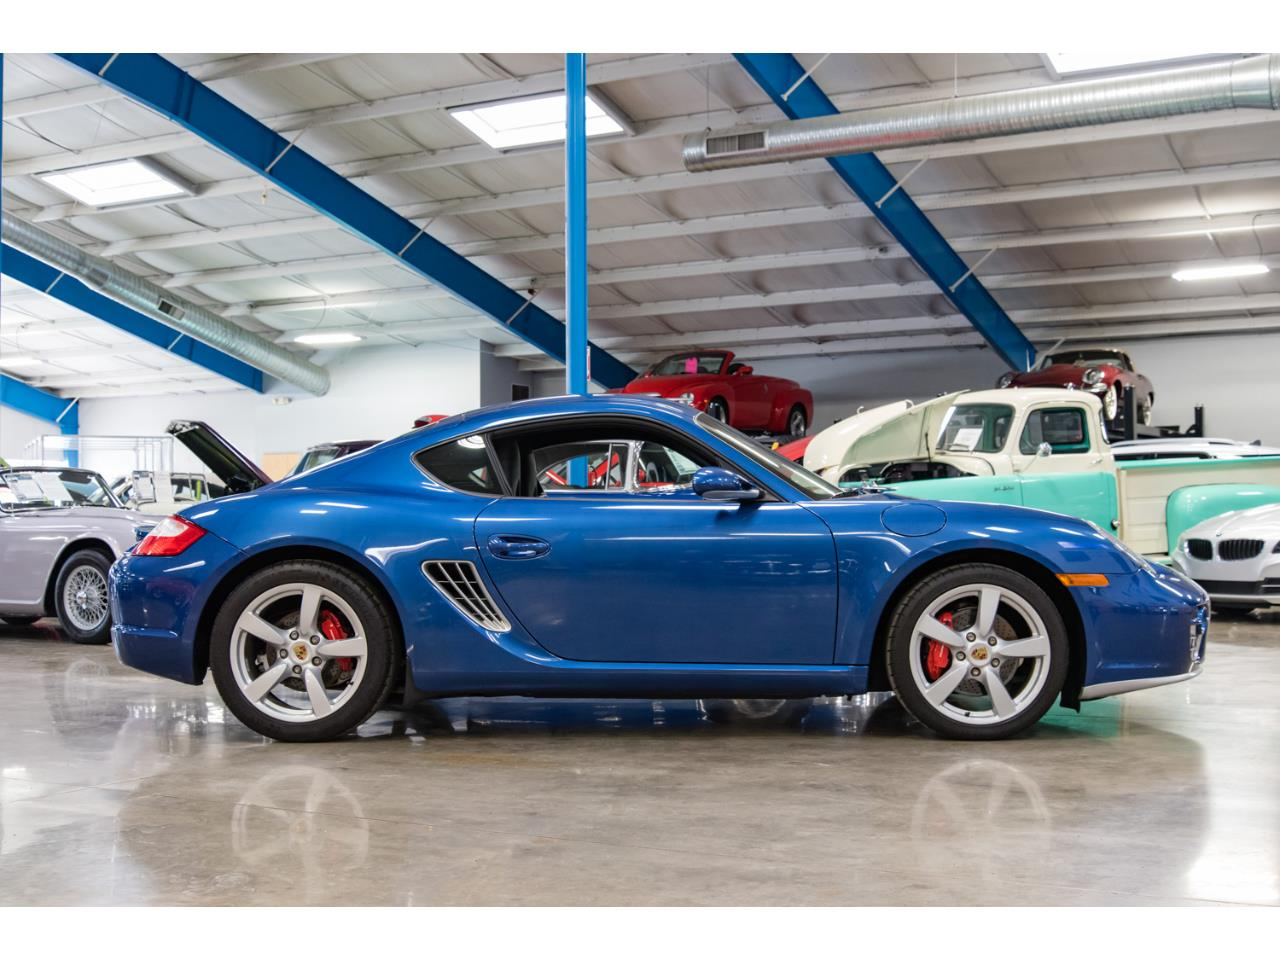 Large Picture of '06 Cayman - $31,800.00 Offered by John Kufleitner's Galleria - PIGE